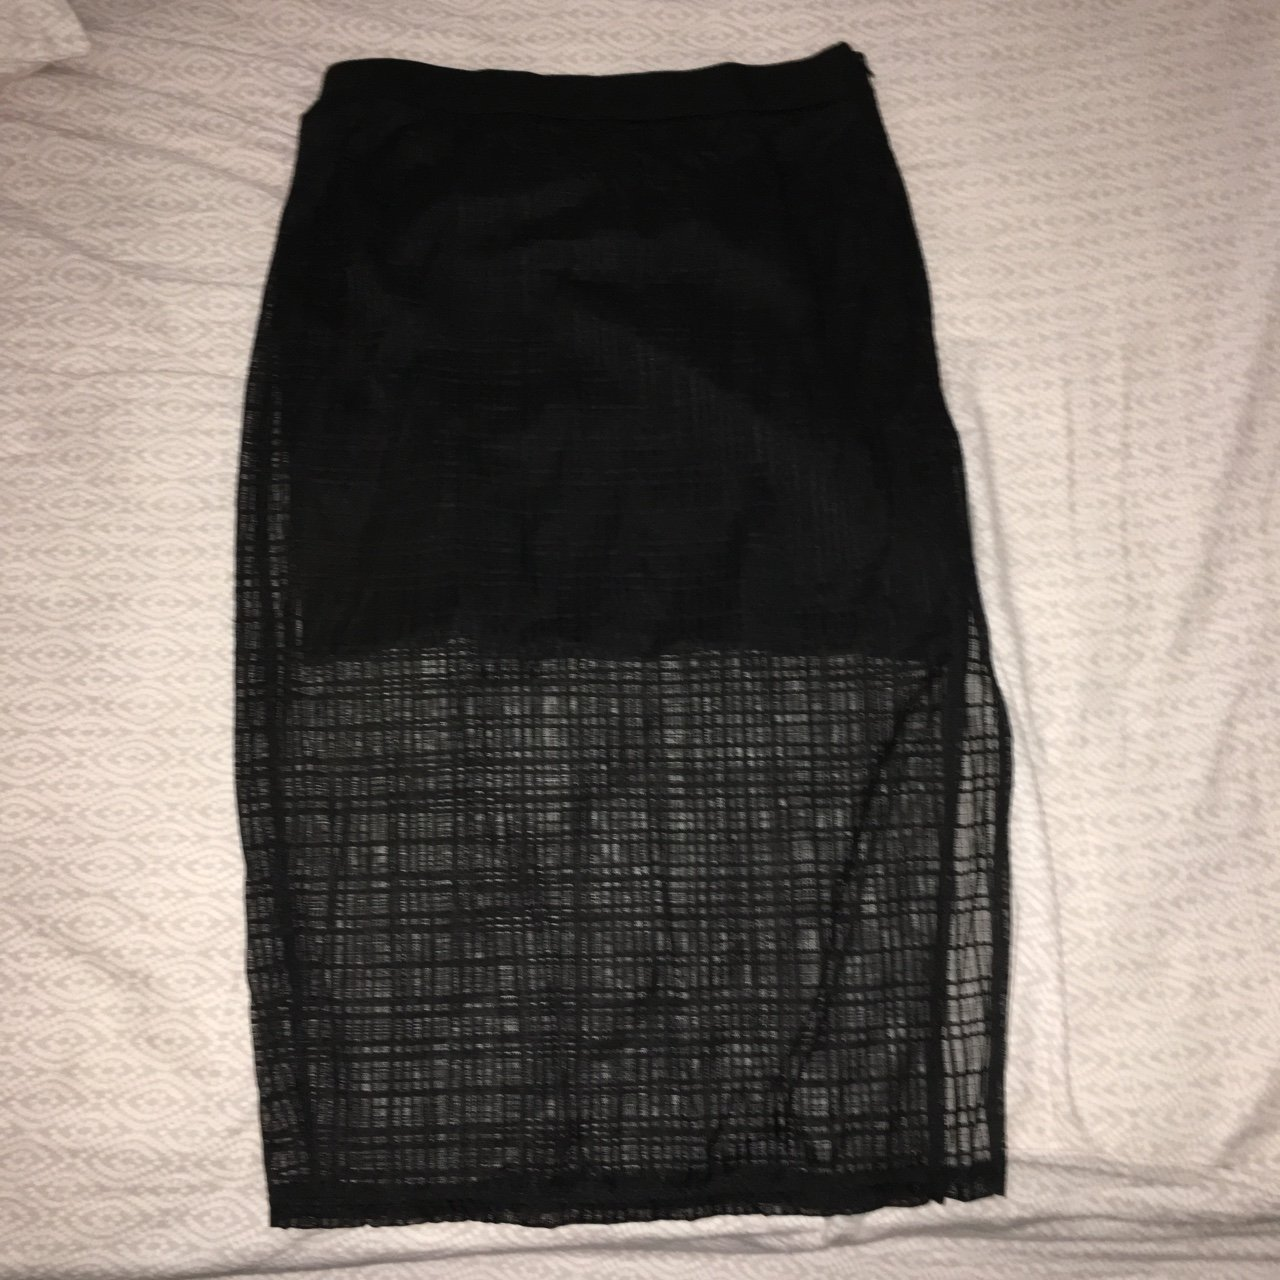 Evil twin skirt Never worn Would fit a 10-12 Free shipping - Depop f2110f74252b